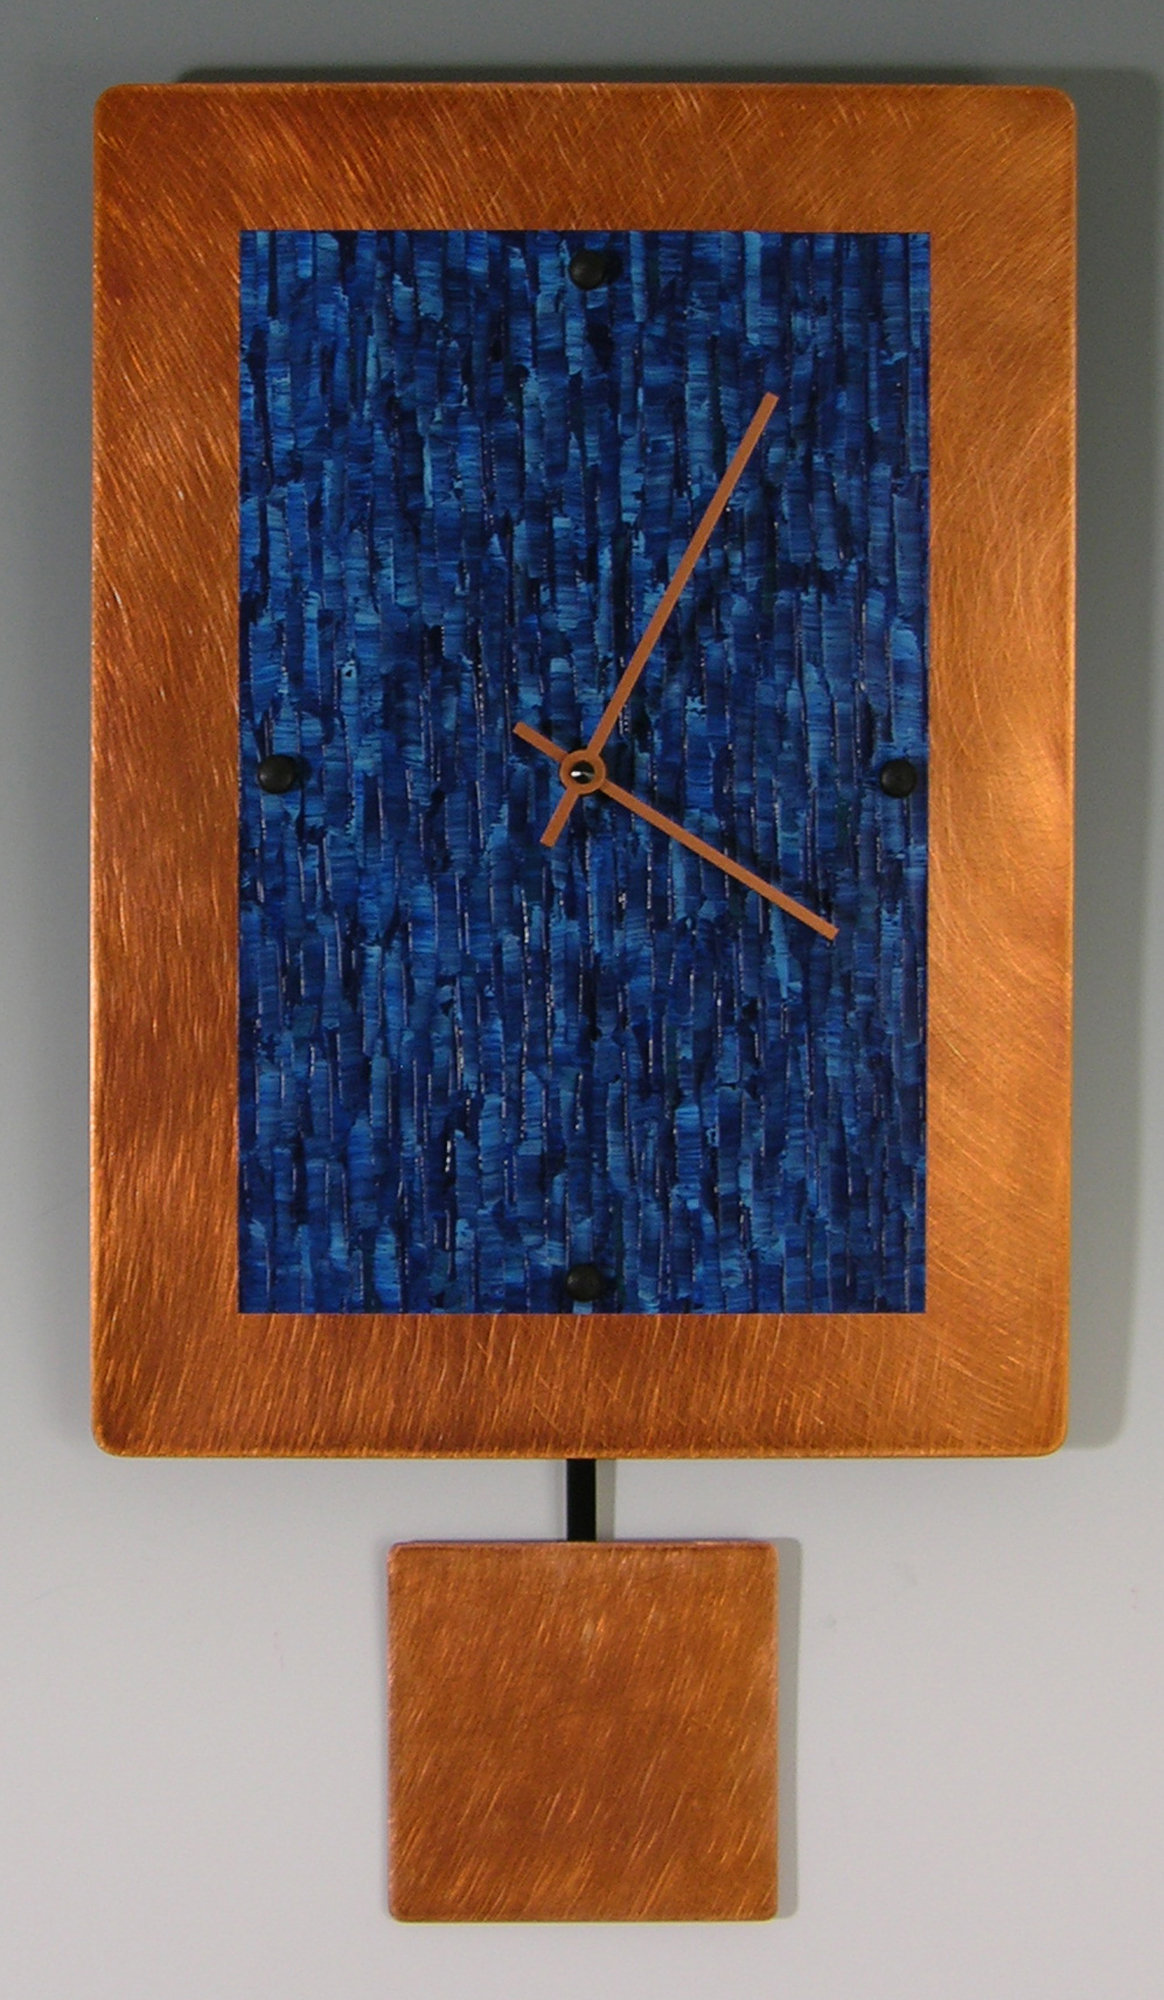 Copper Ocean Pendulum Clock